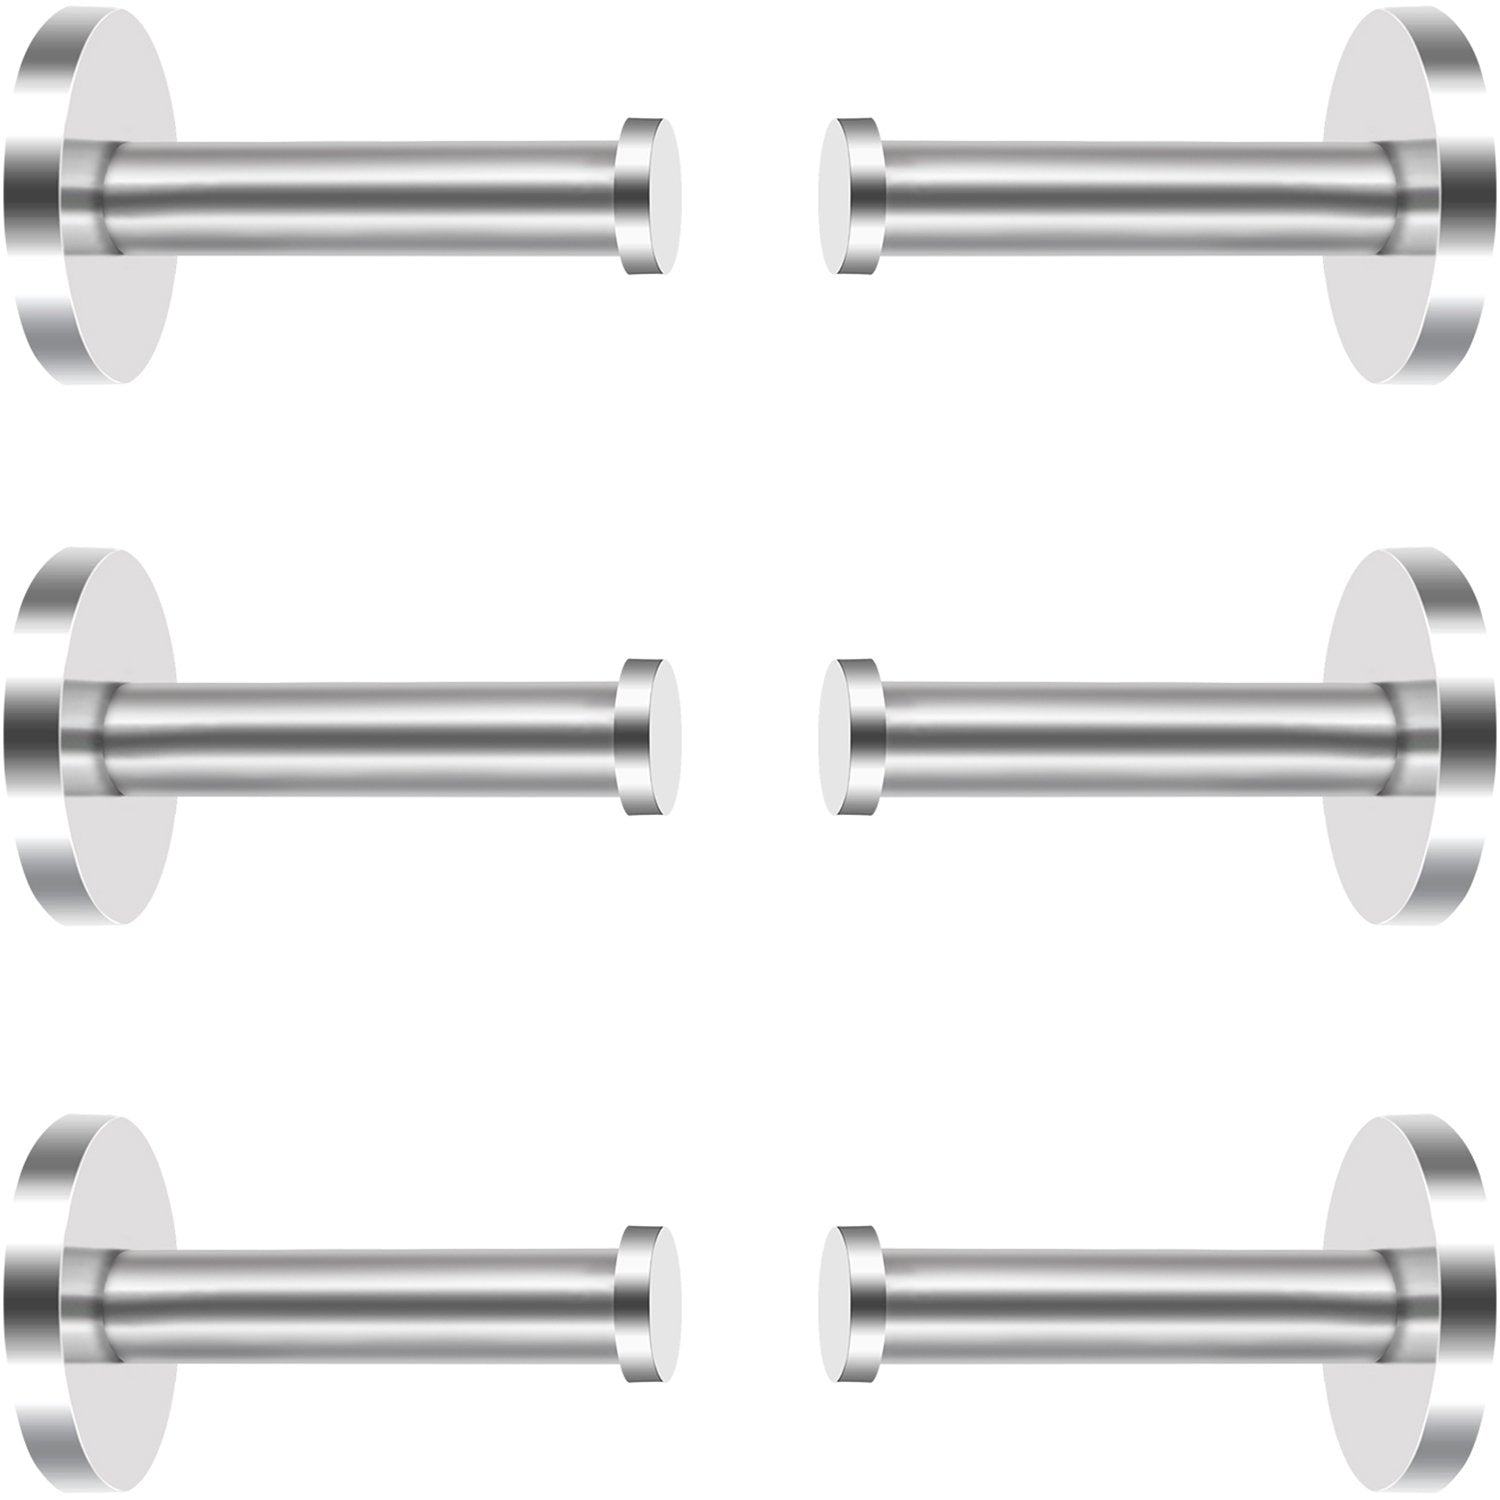 6 Pieces Stainless Steel Wall-Mount Robe Hook Coat Hook Towel Wall Hook, Brushed Nickel (1.9 Inch, Silver)